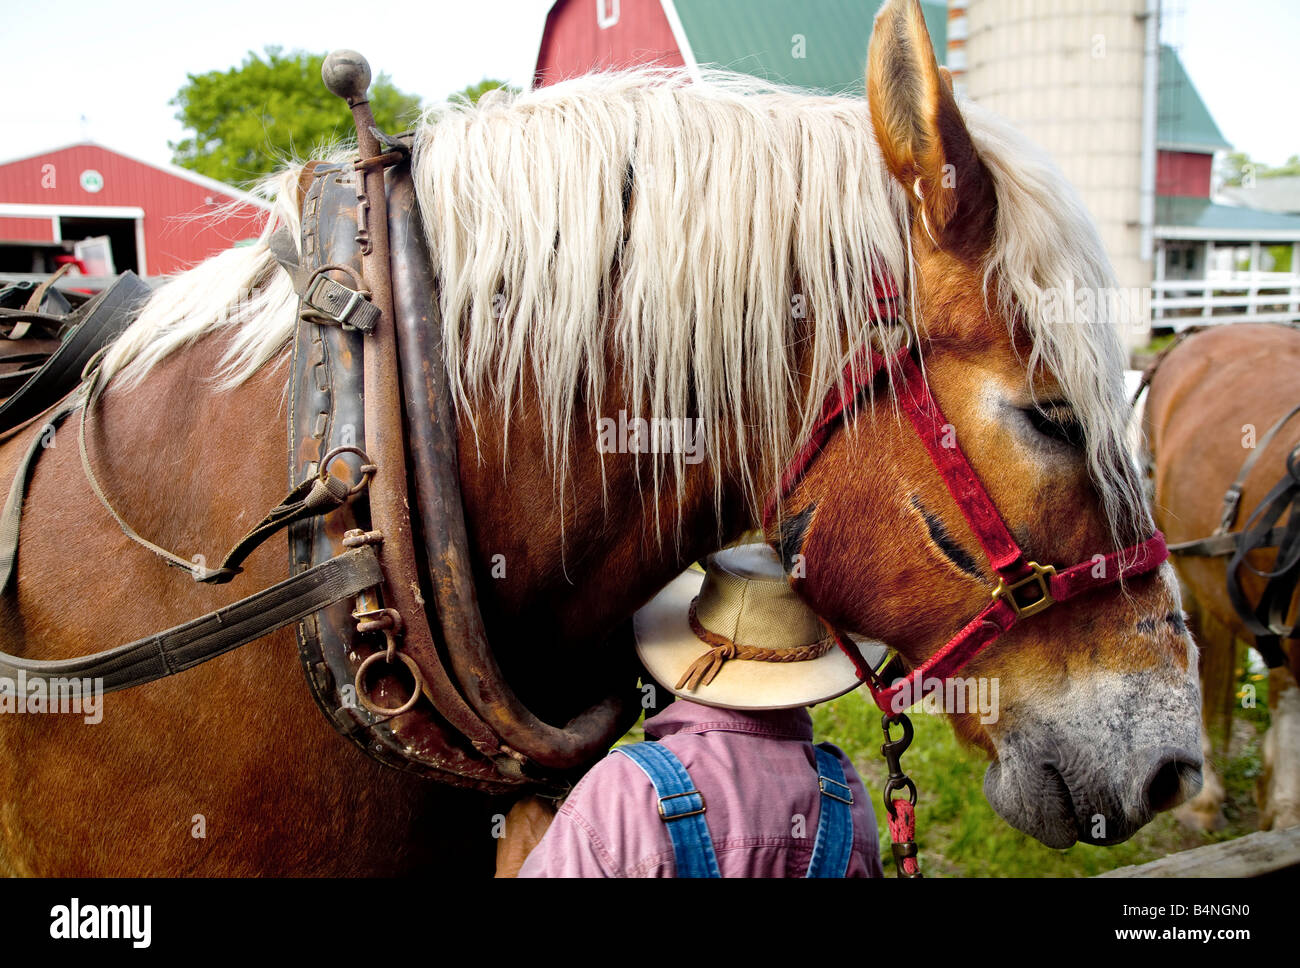 Harnessing a Belgian Draft Horse on a southern Wisconsin farm - Stock Image